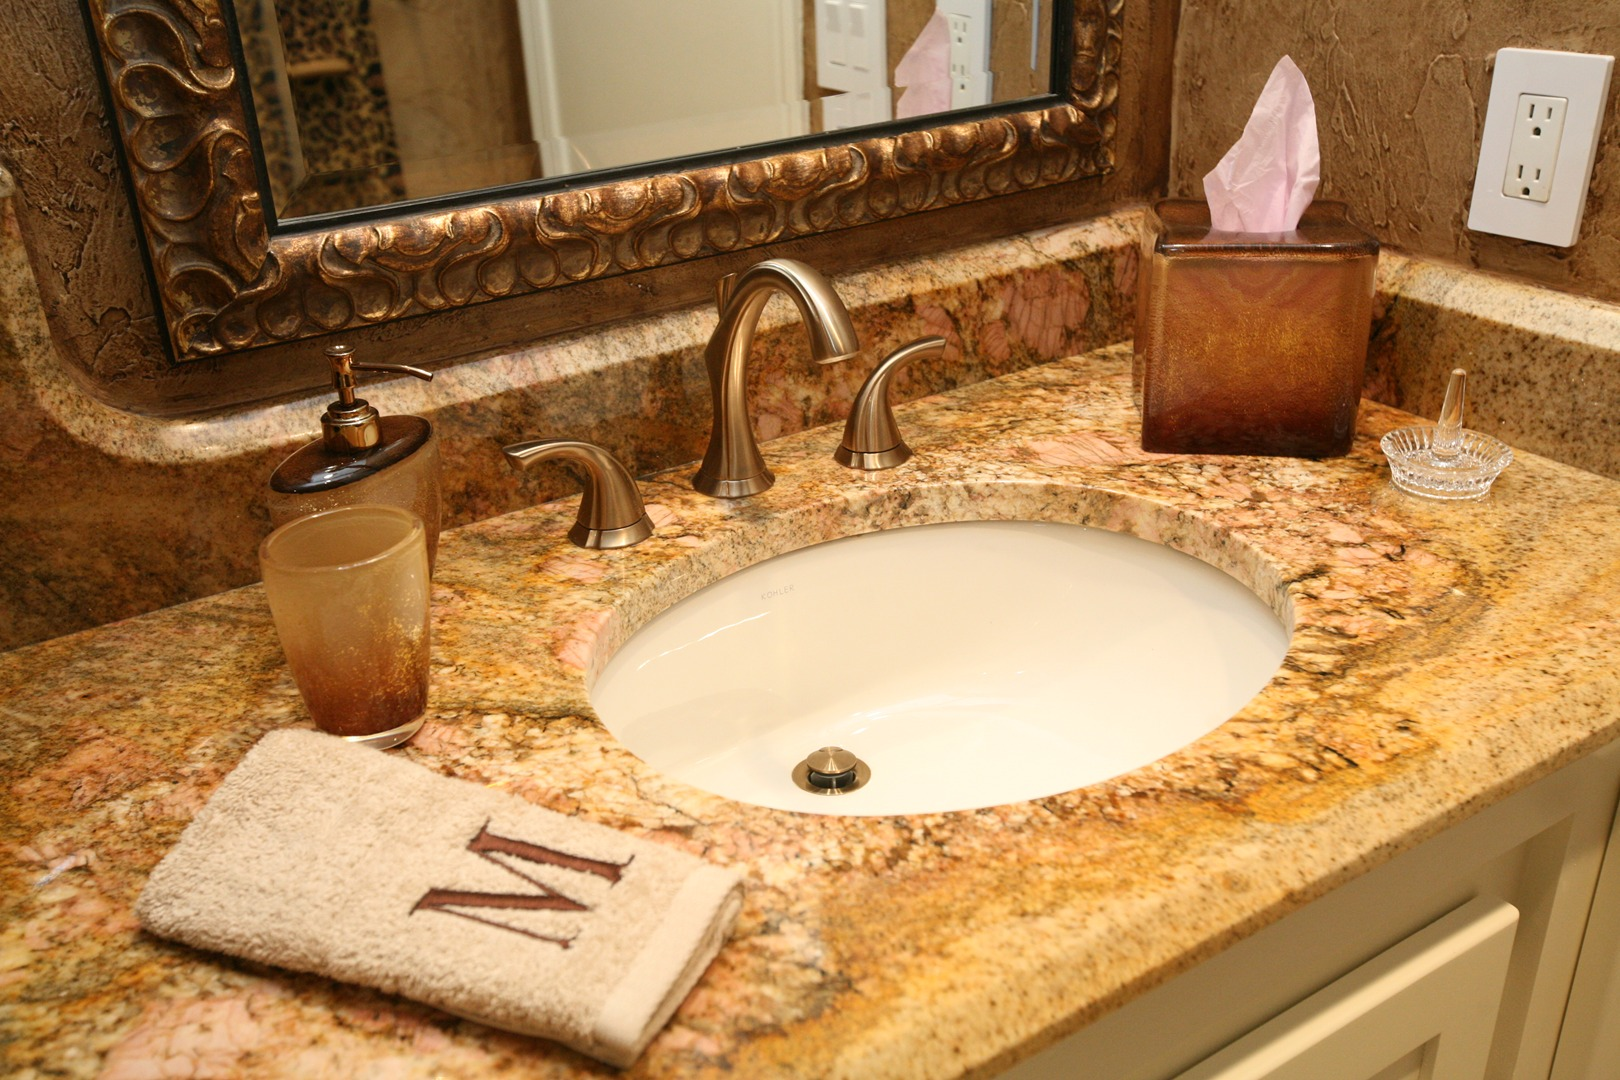 photo gallery page 1 kitchen remodel okc Bath remodeling kitchen remodeling Gibraltar Construction Co Oklahoma City Oklahoma